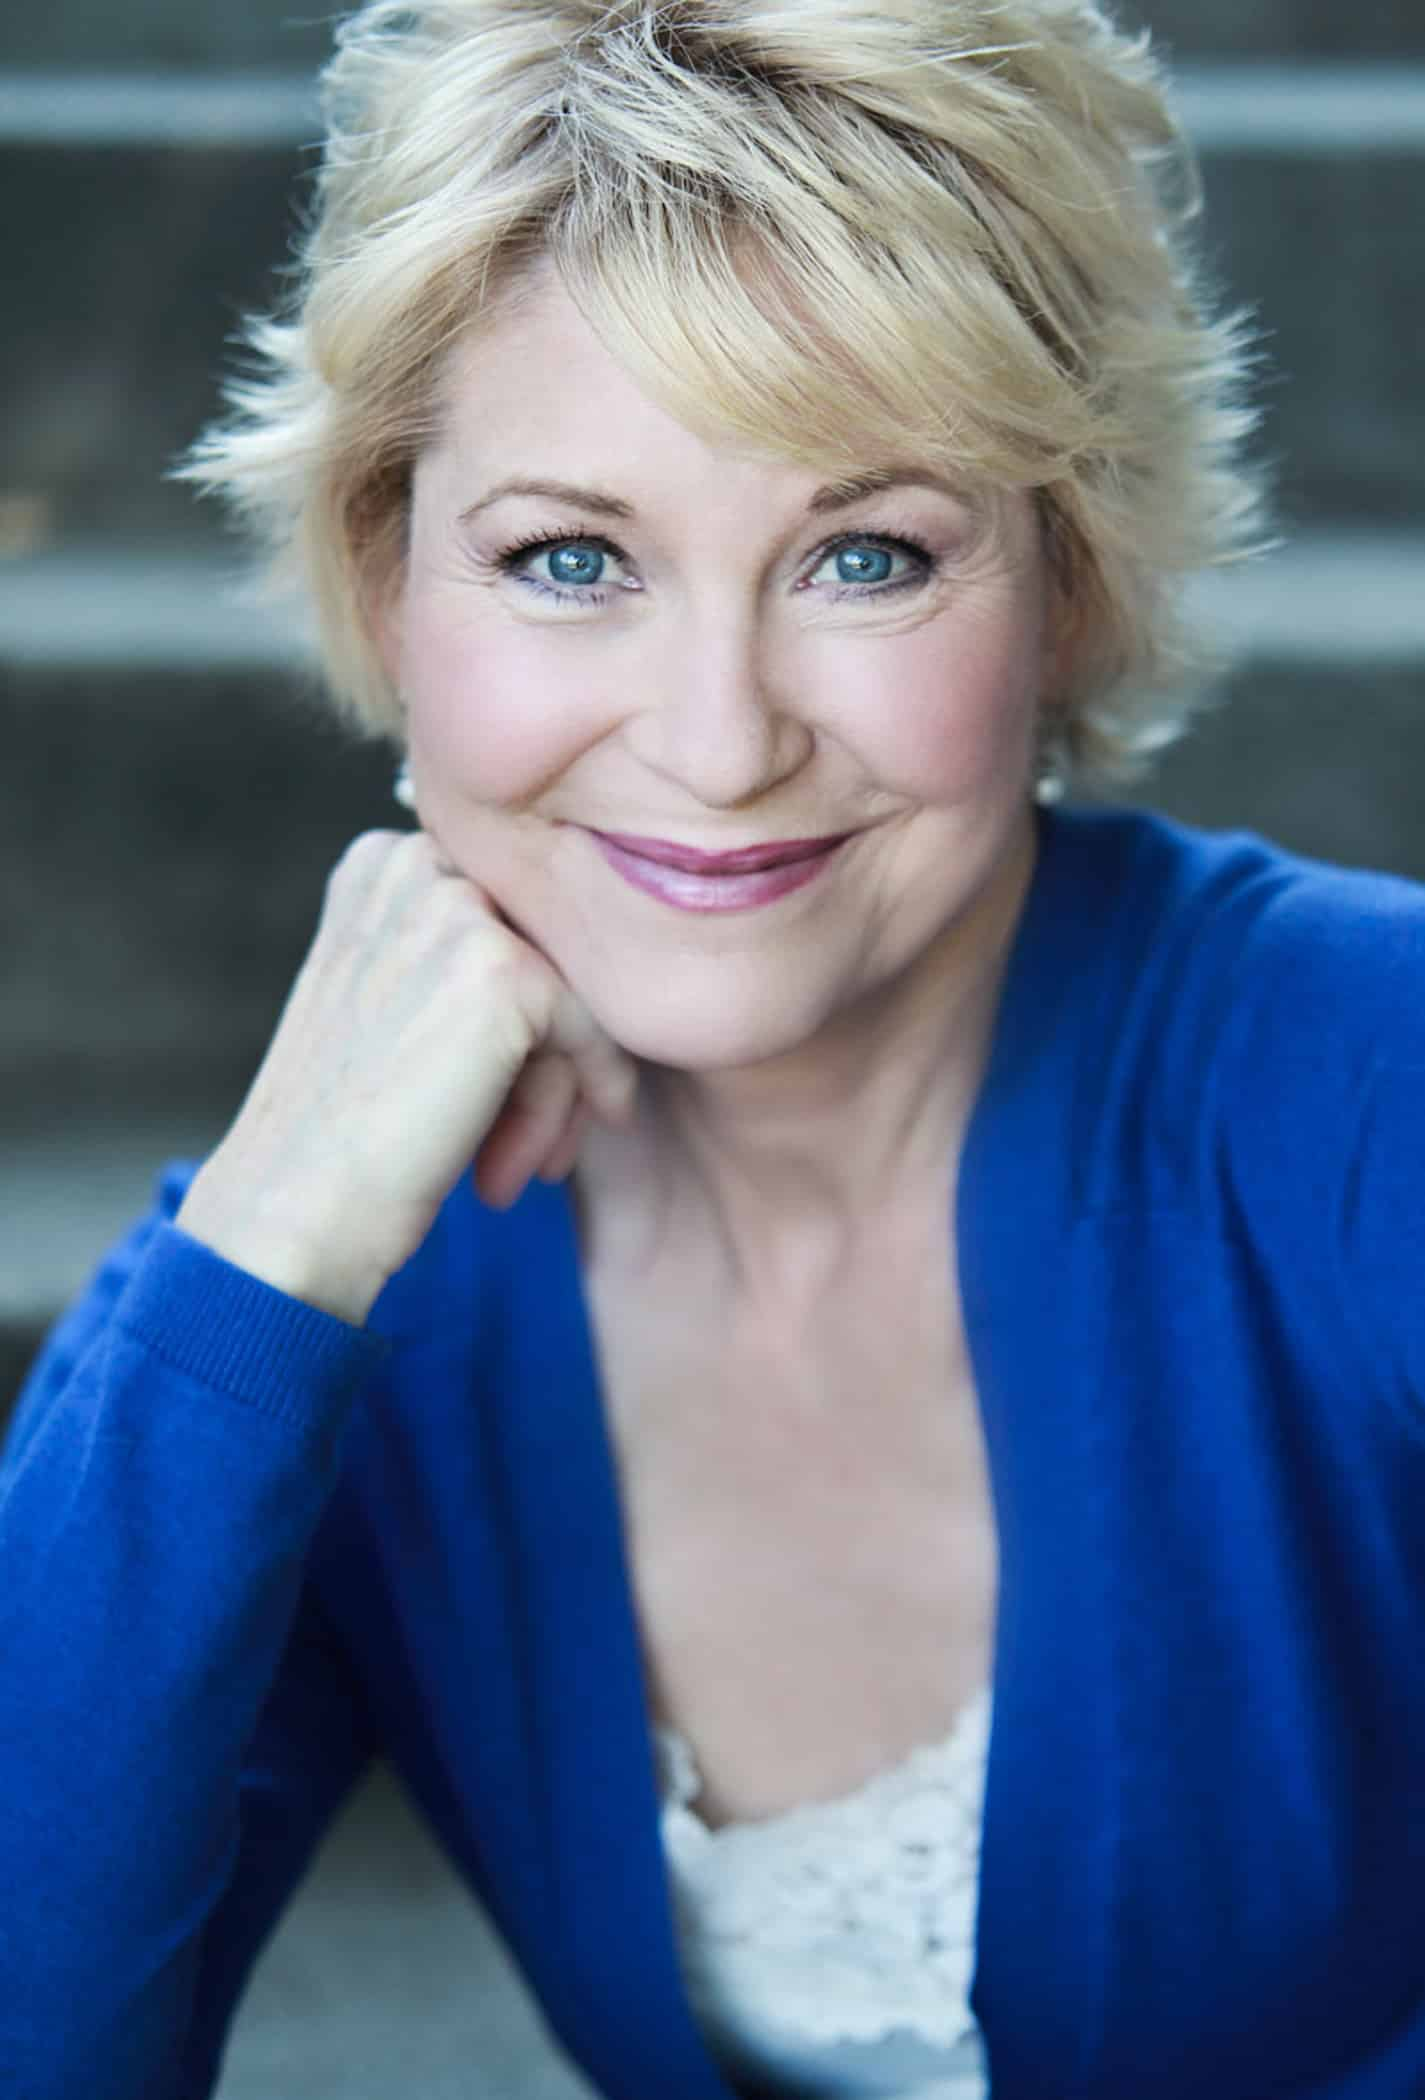 Dee Wallace | Provided by Publicist